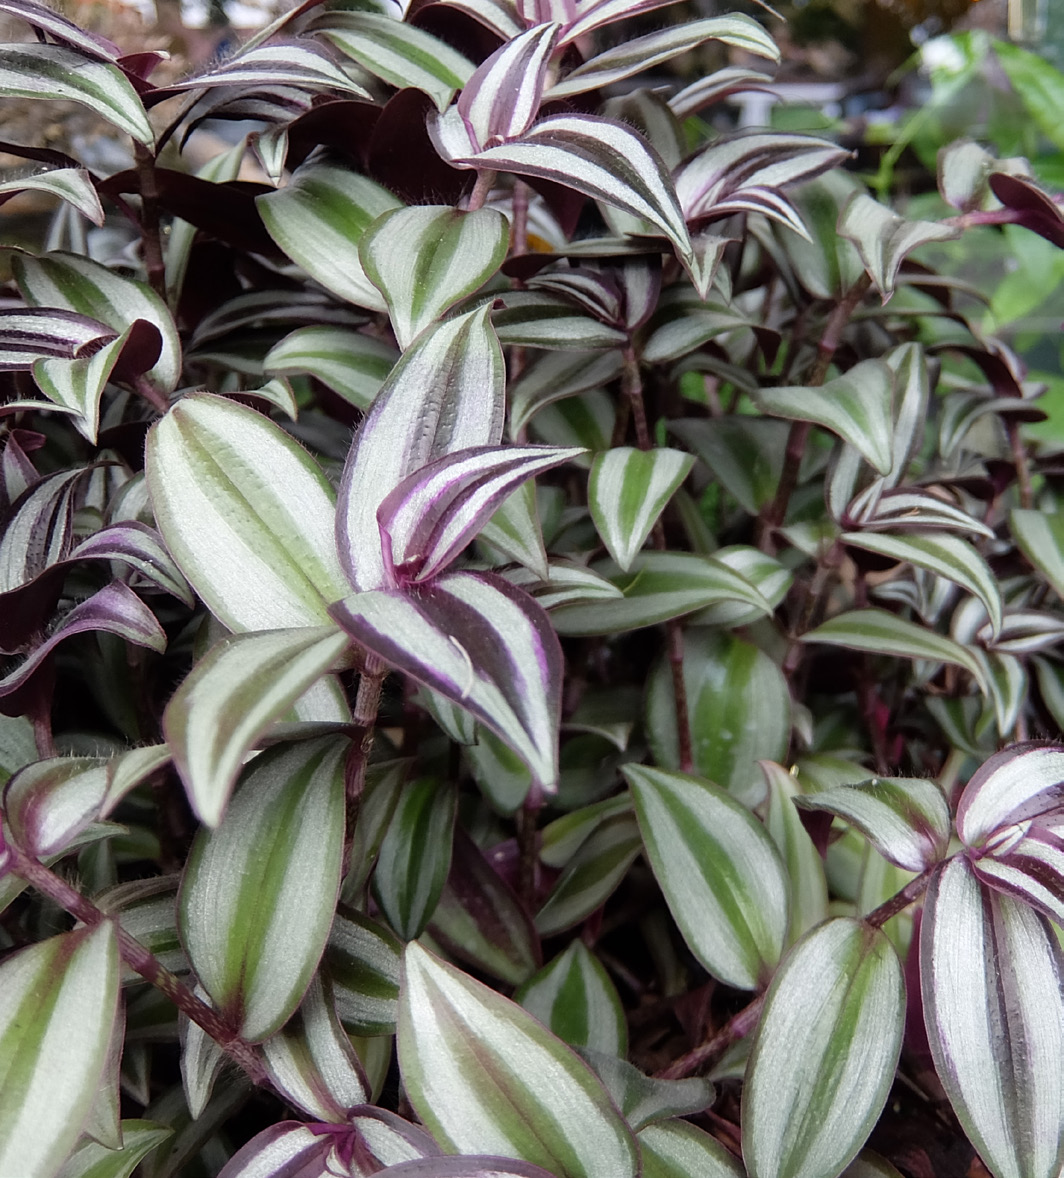 TRADESCANTIA FLUMINENSIS: This may be grown as an indoor plant invariegated forms. It requires moist soil to do well.